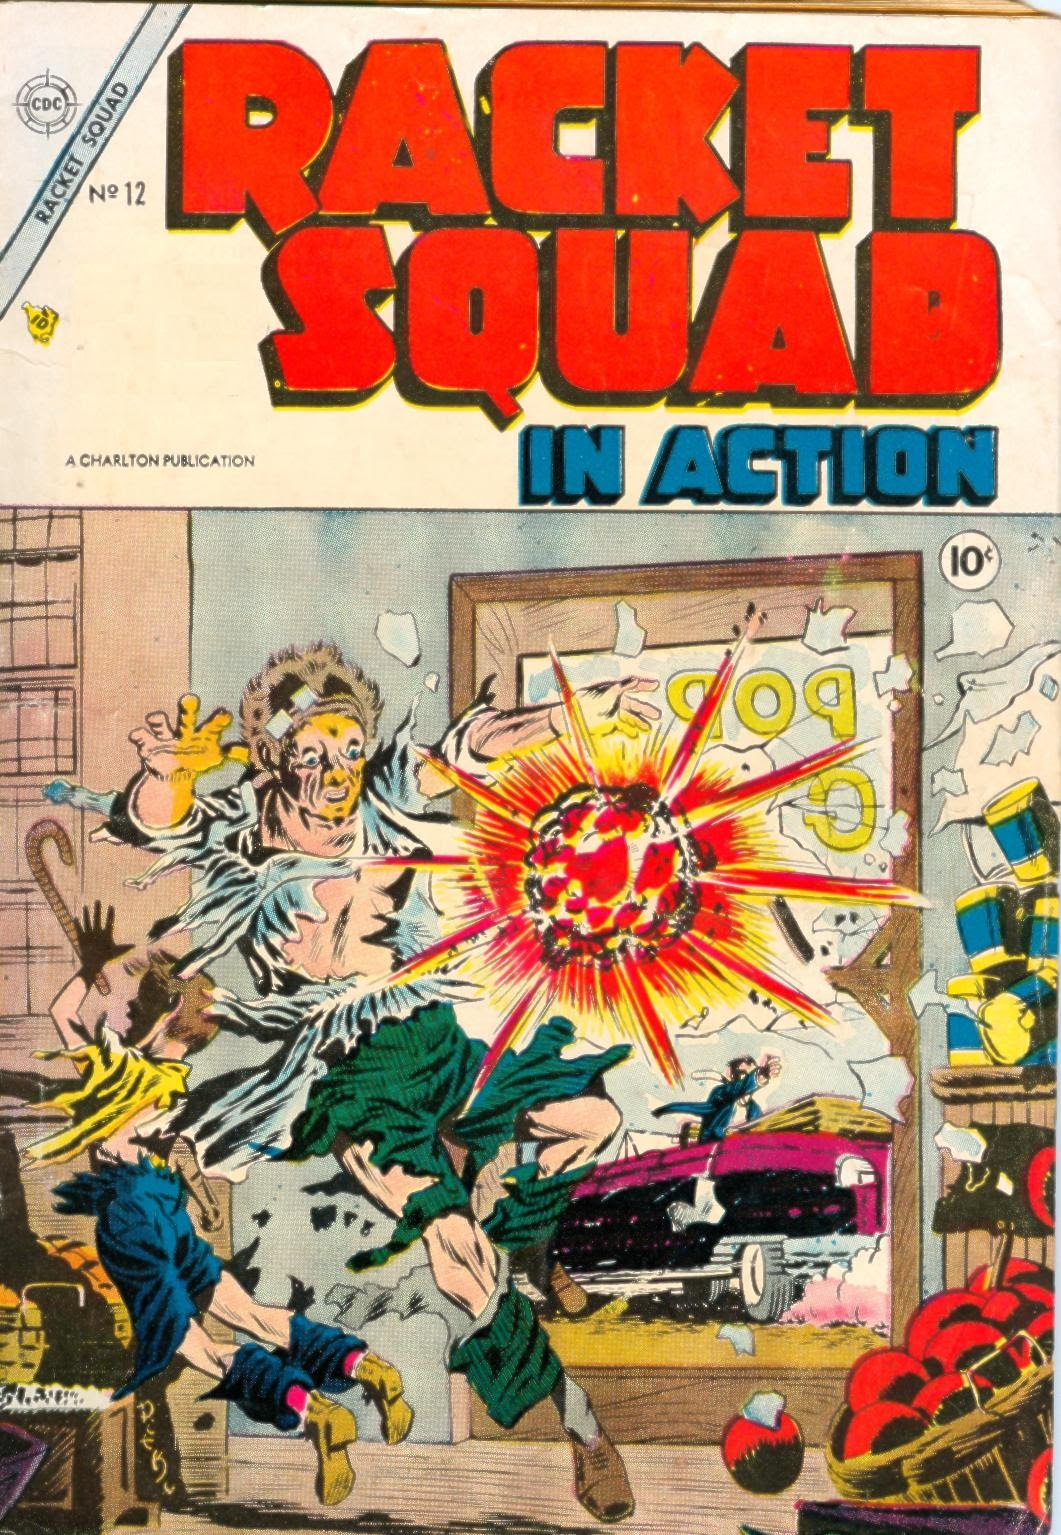 Read online Racket Squad in Action comic -  Issue #12 - 1